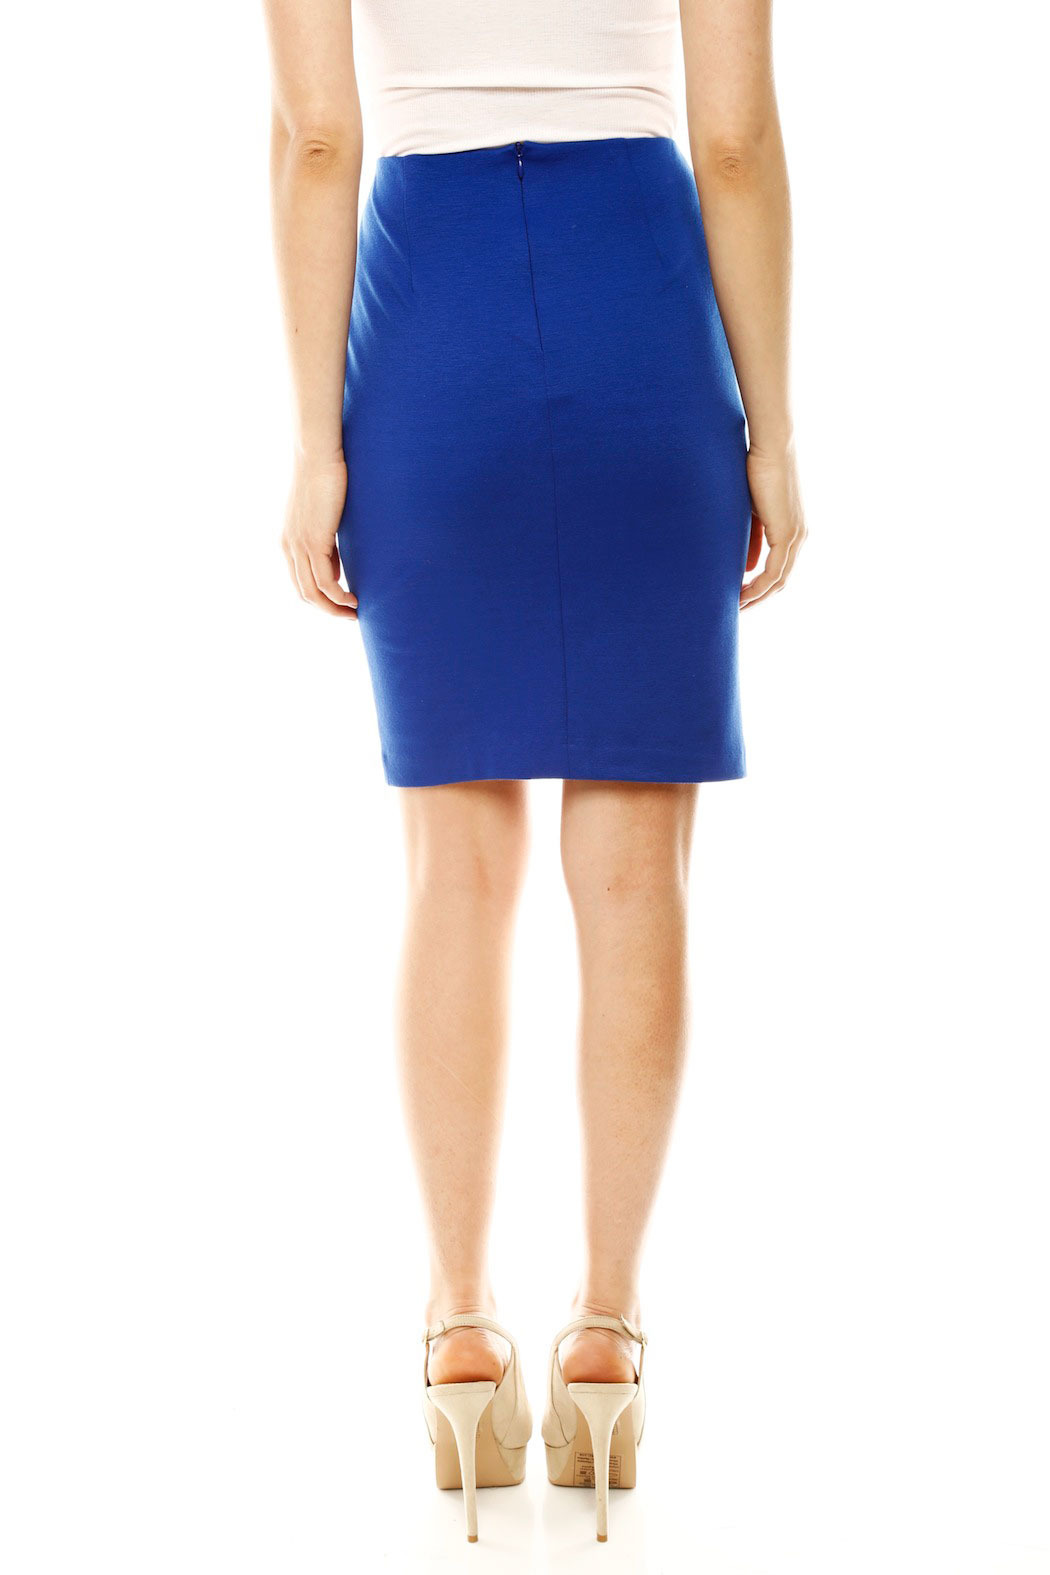 DANIELA CORTE Knit Pencil Skirt - Back Cropped Image